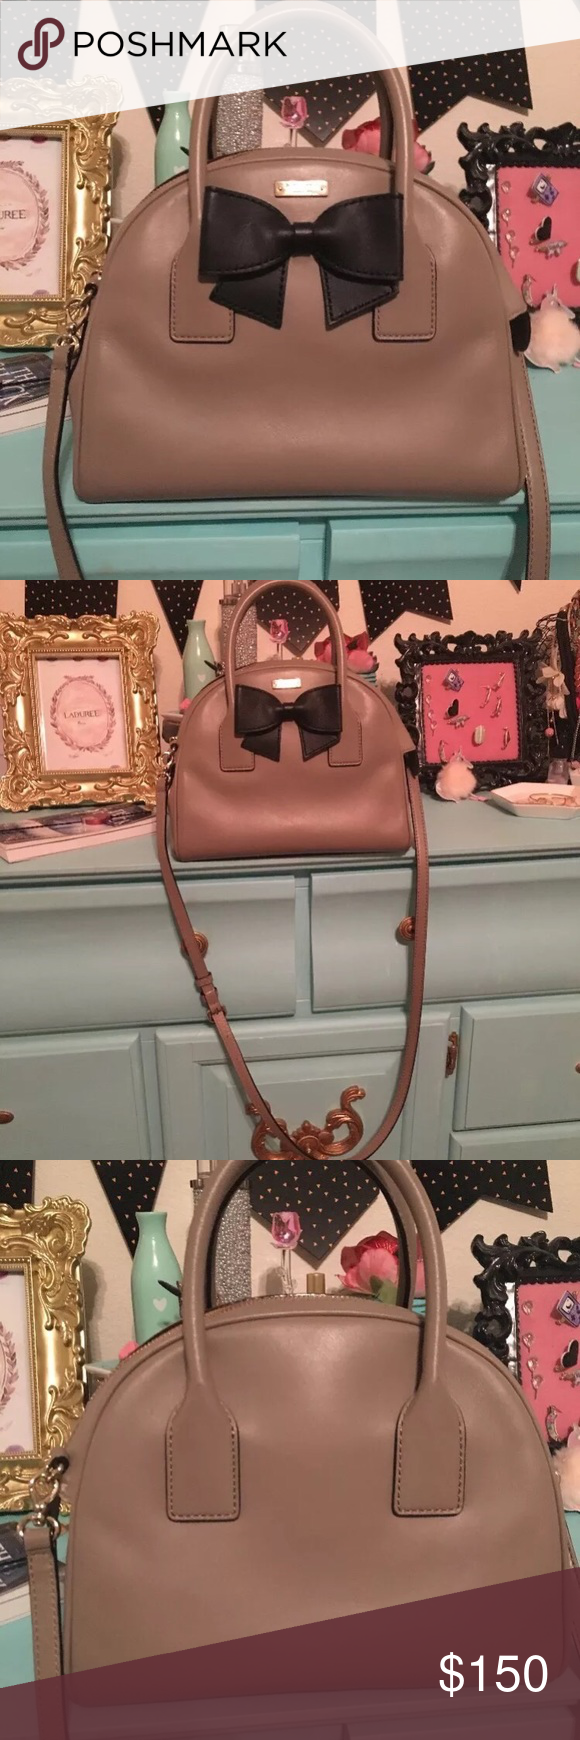 Kate spade bag Beautiful purse. Used once. Excellent condition. kate spade Bags Crossbody Bags